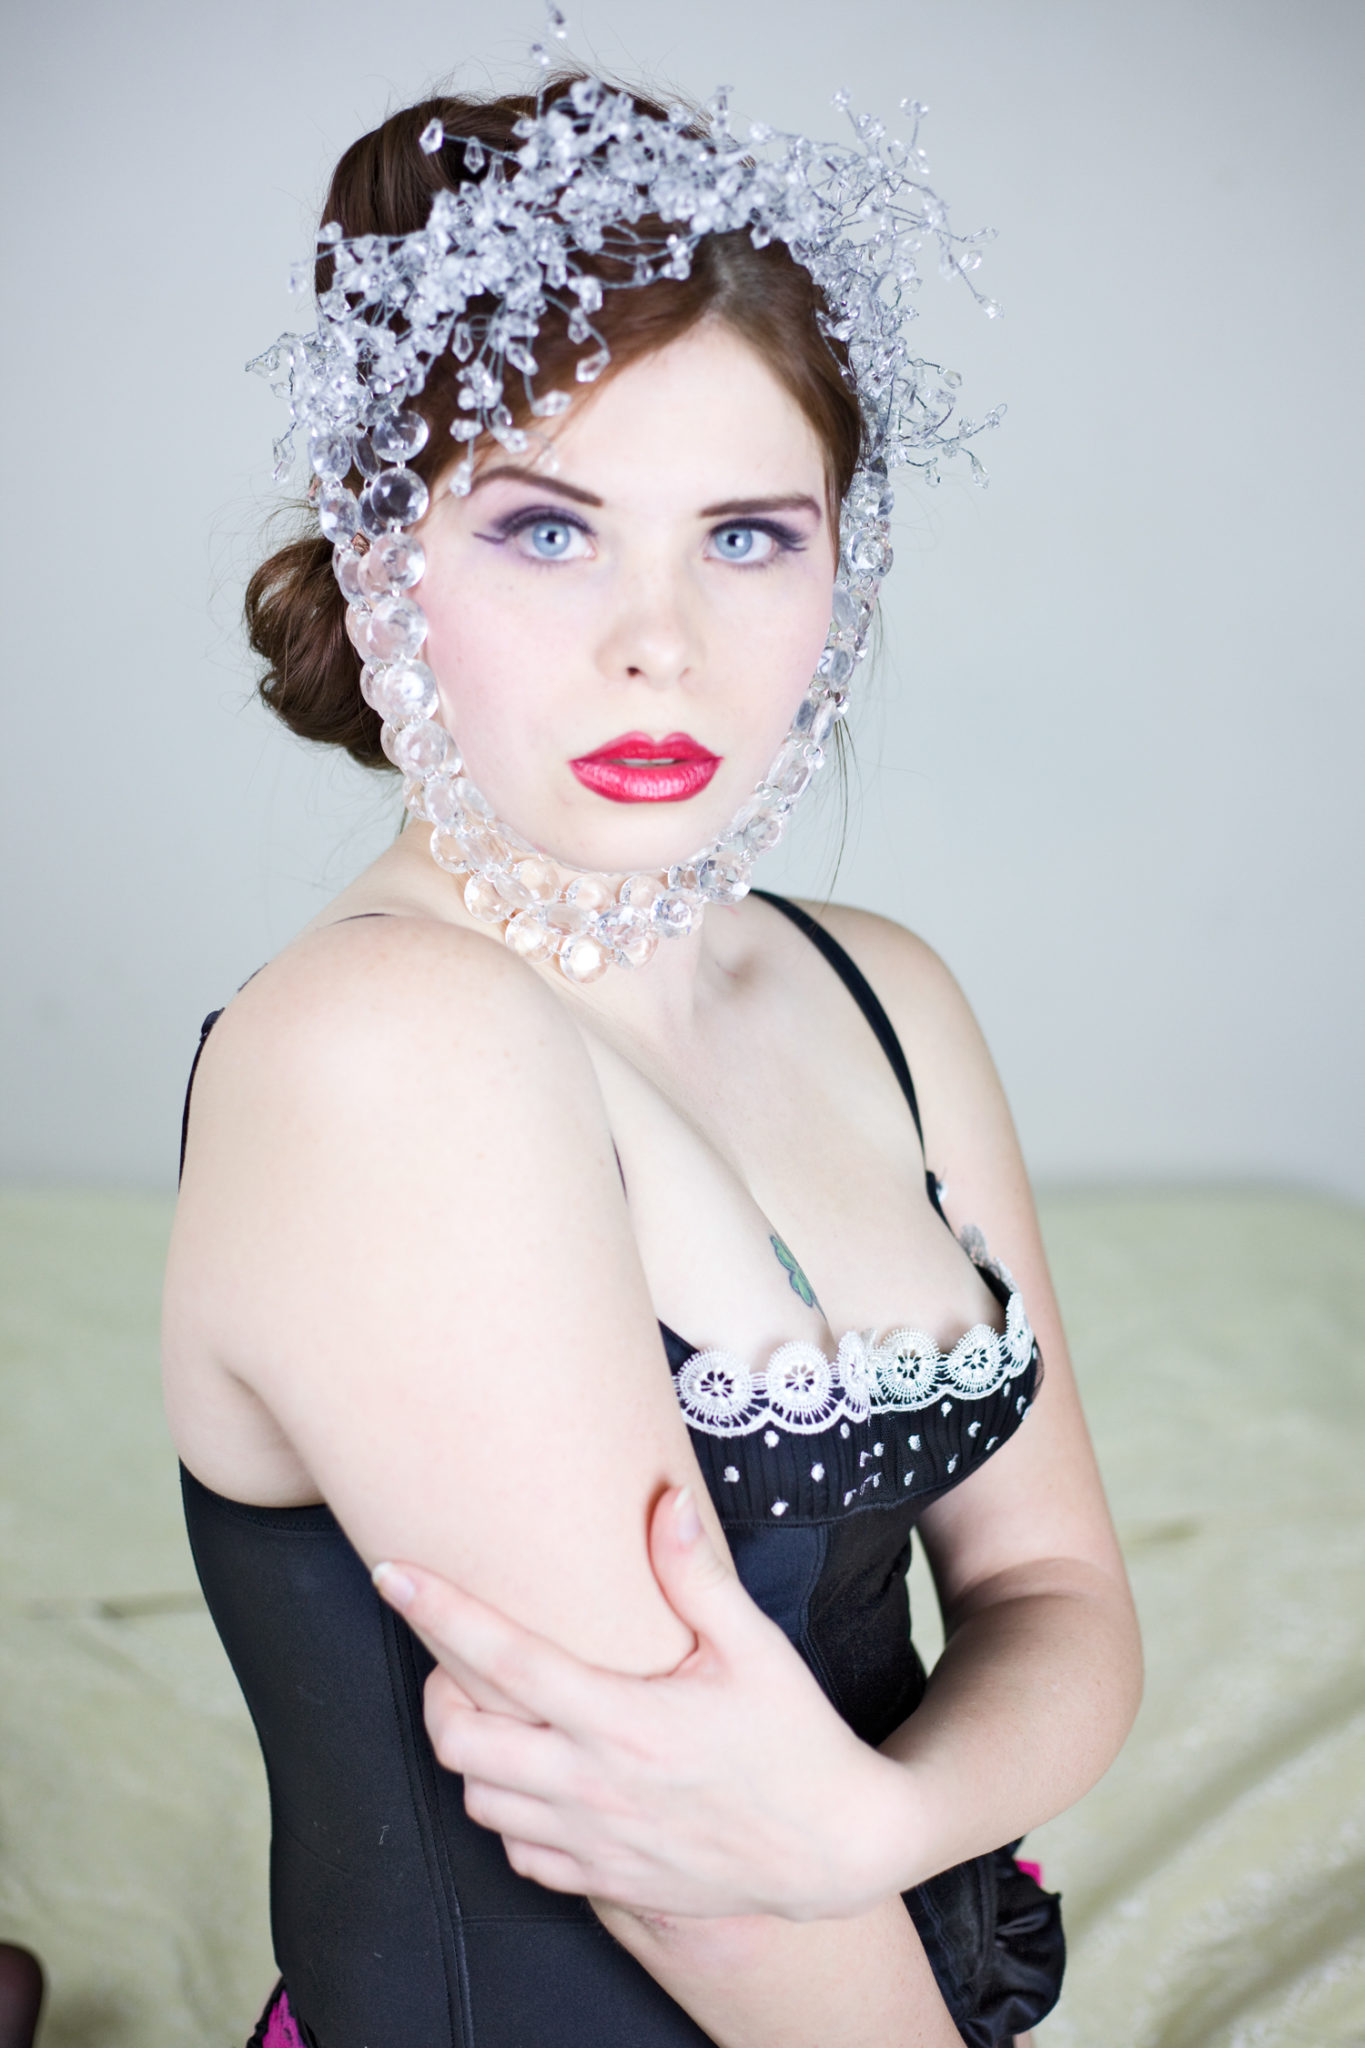 High fashion headpiece photography.